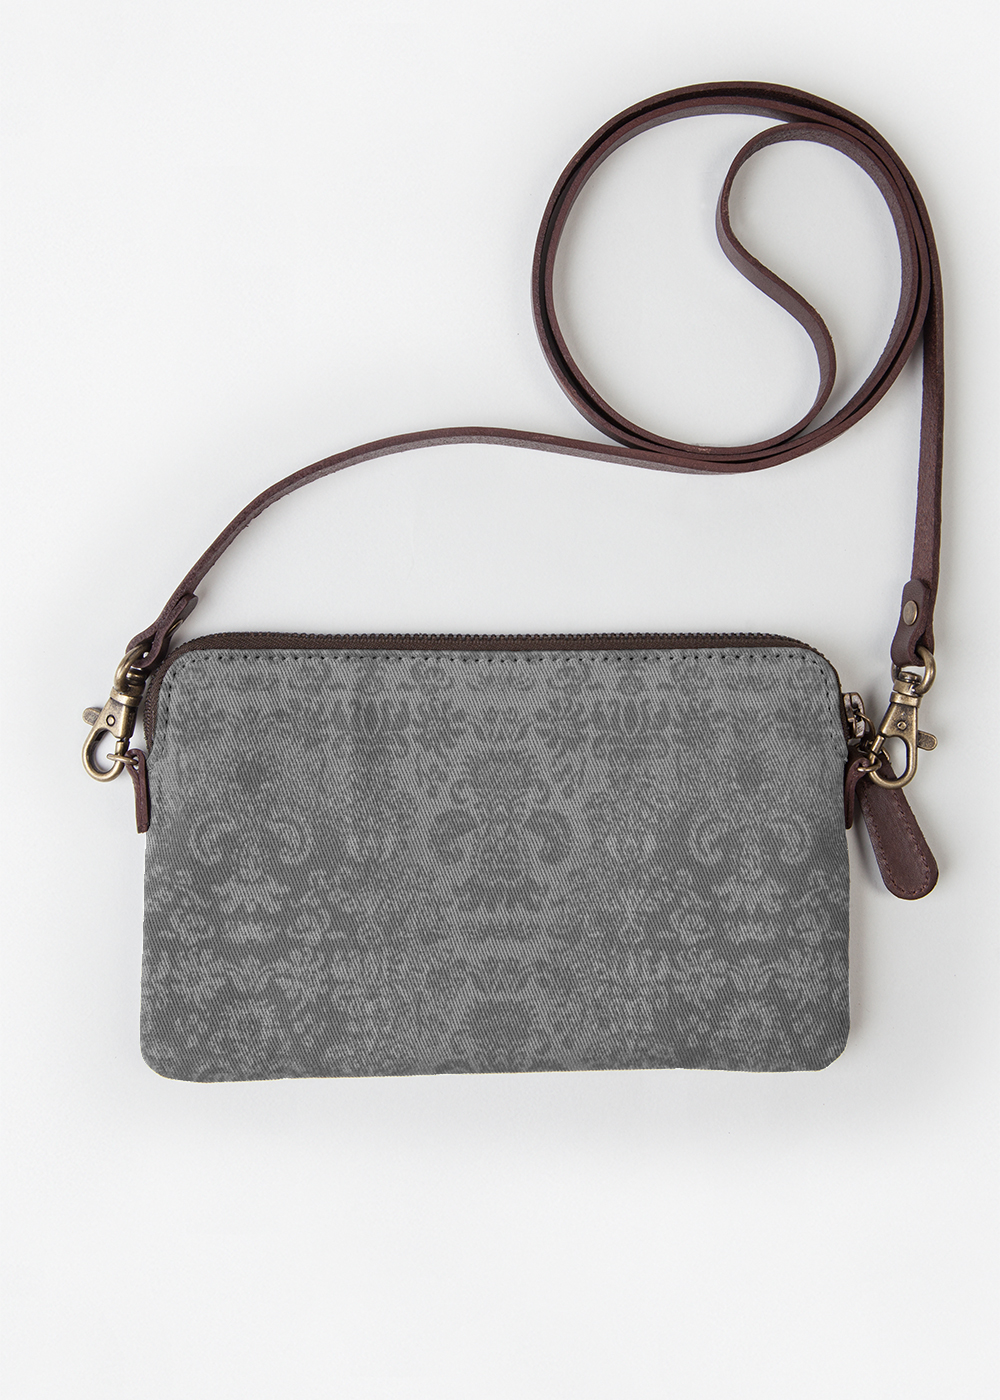 VIDA Leather Statement Clutch - Grey Scales II Clutch by VIDA dn2xjTDV9A